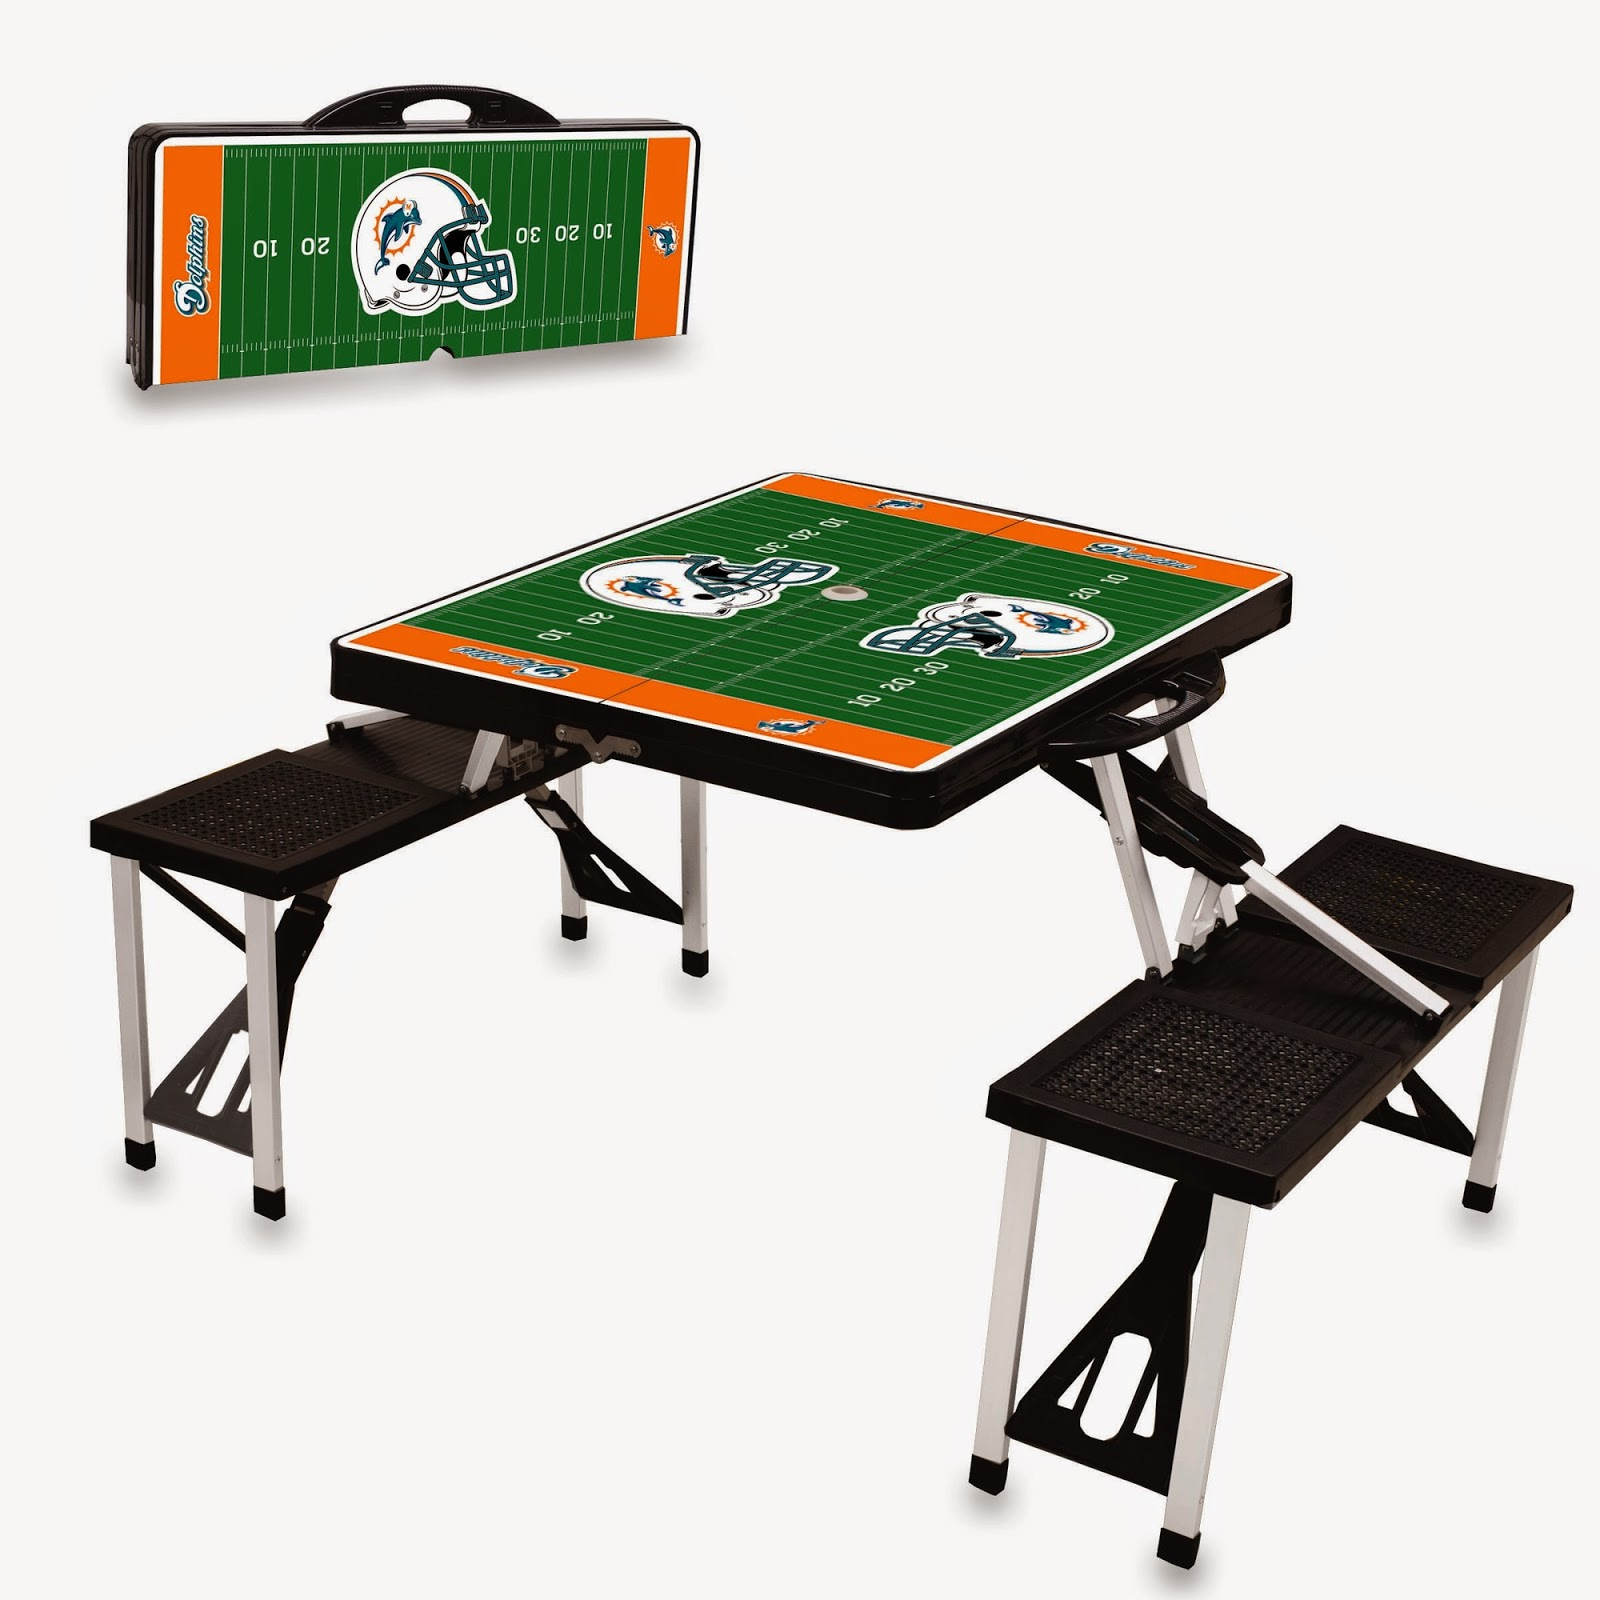 Picnic Time Miami Dolphins NFL Picnic Table